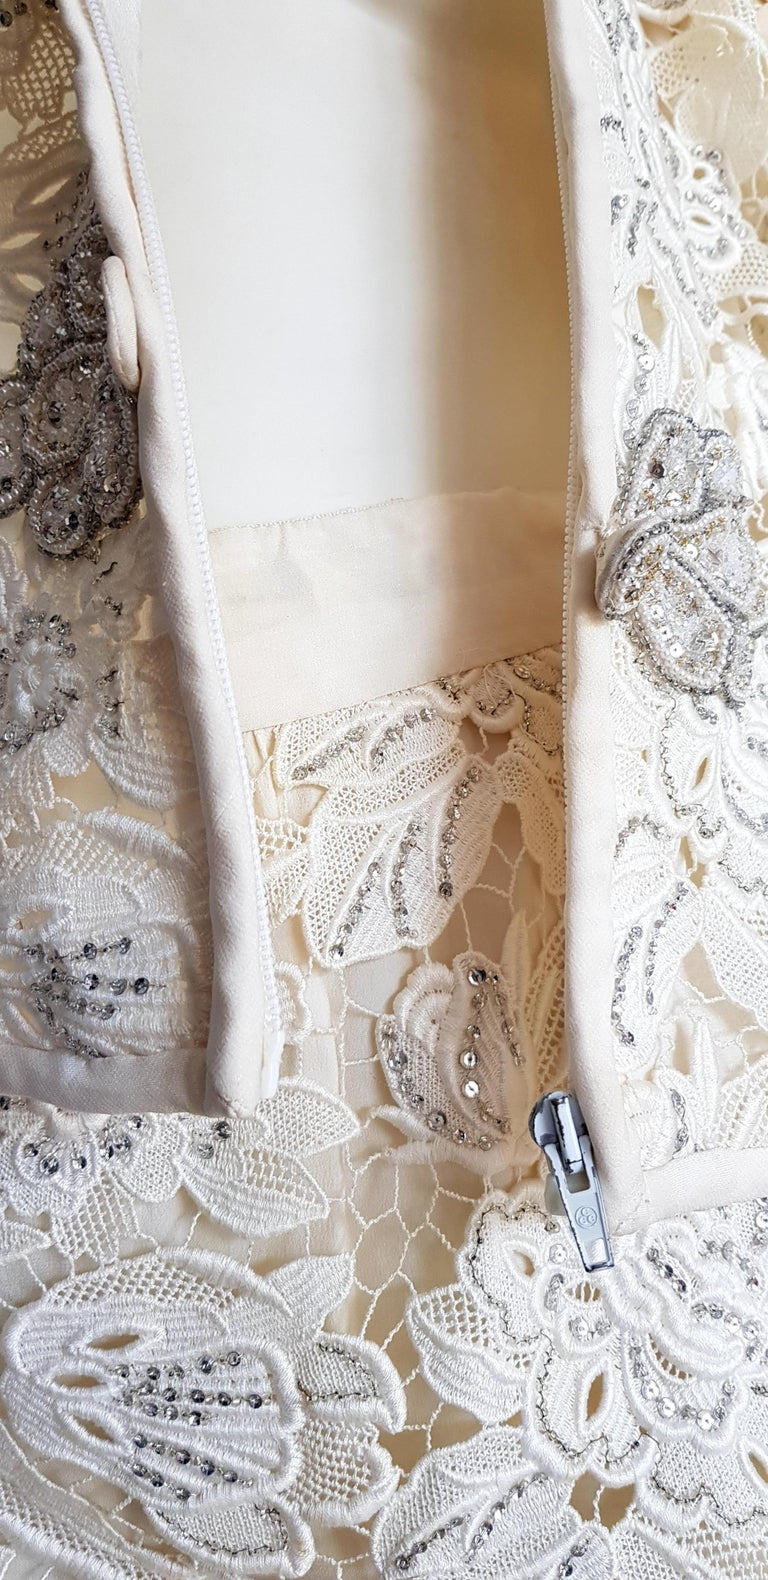 VALENTINO Haute Couture Swarovski Diamonds Embroidered Lace Beige Suit - Unworn For Sale 8